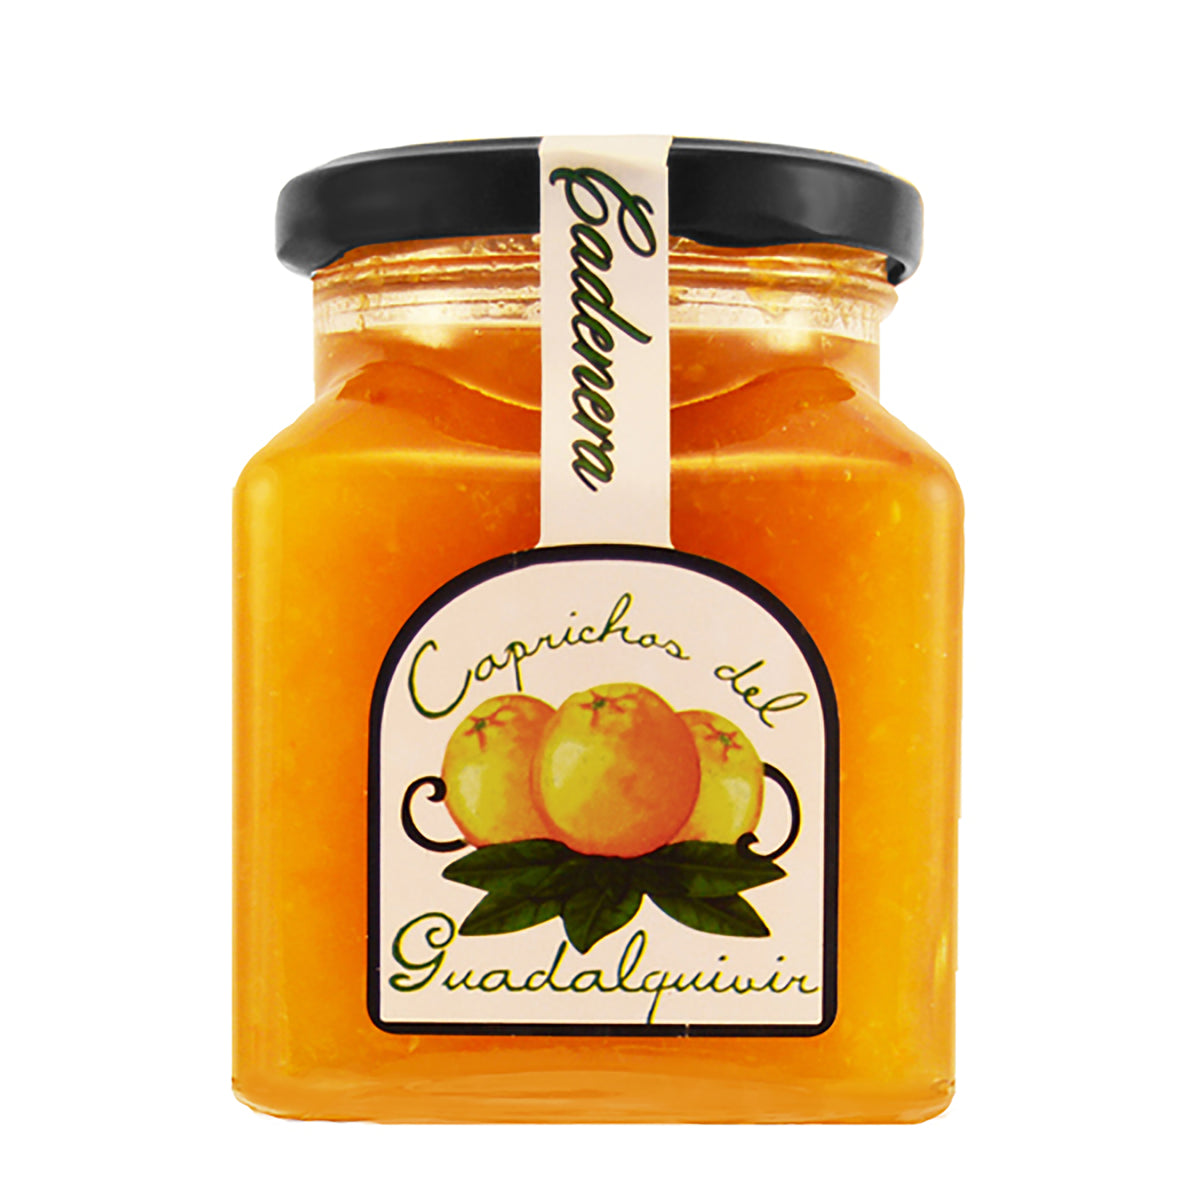 Spanish Cadenera Orange Marmalade